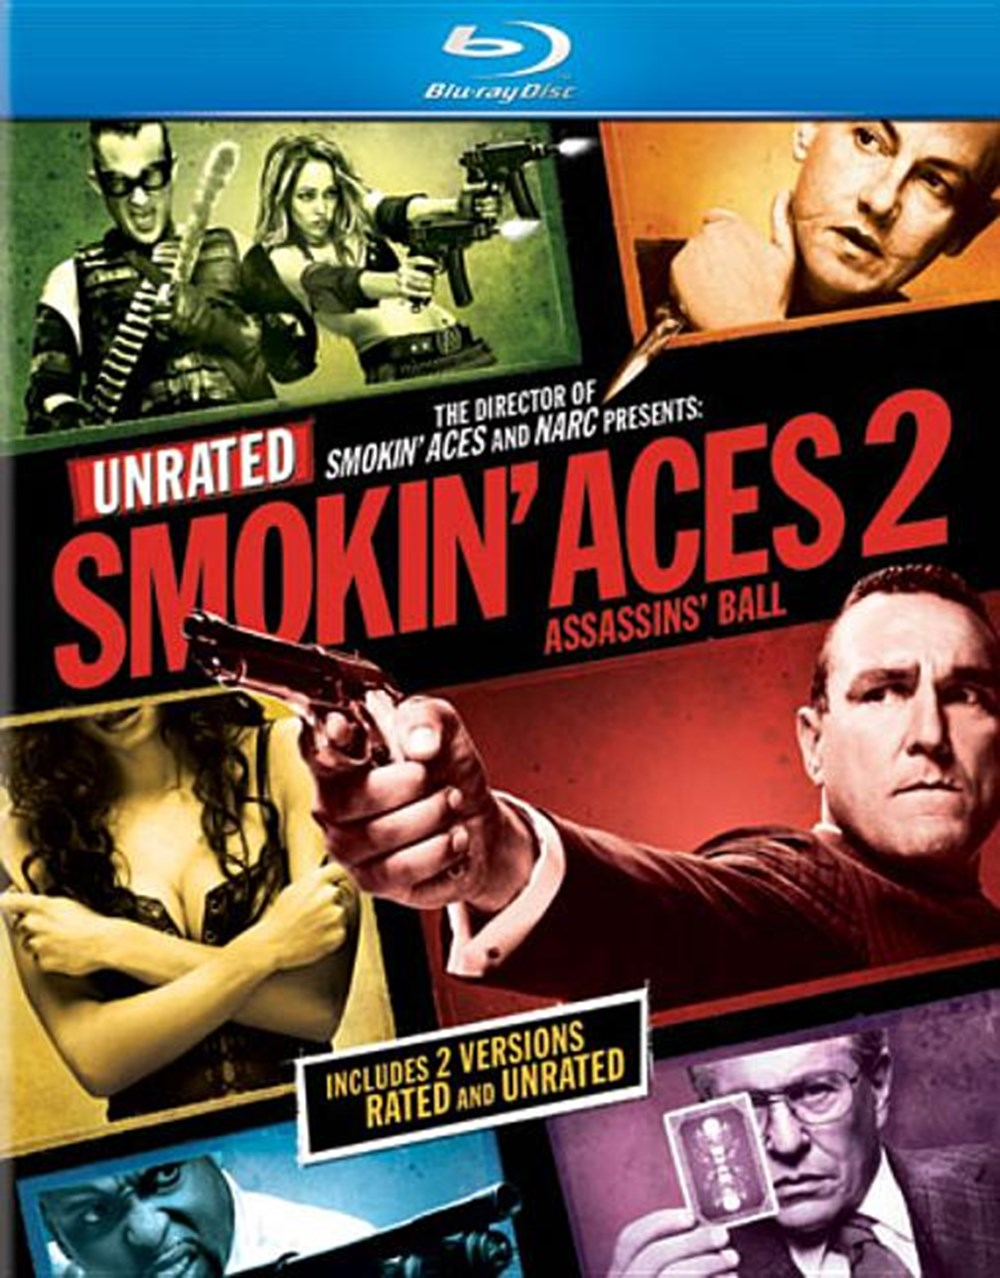 Smokin' Aces 2 Assassins' Ball